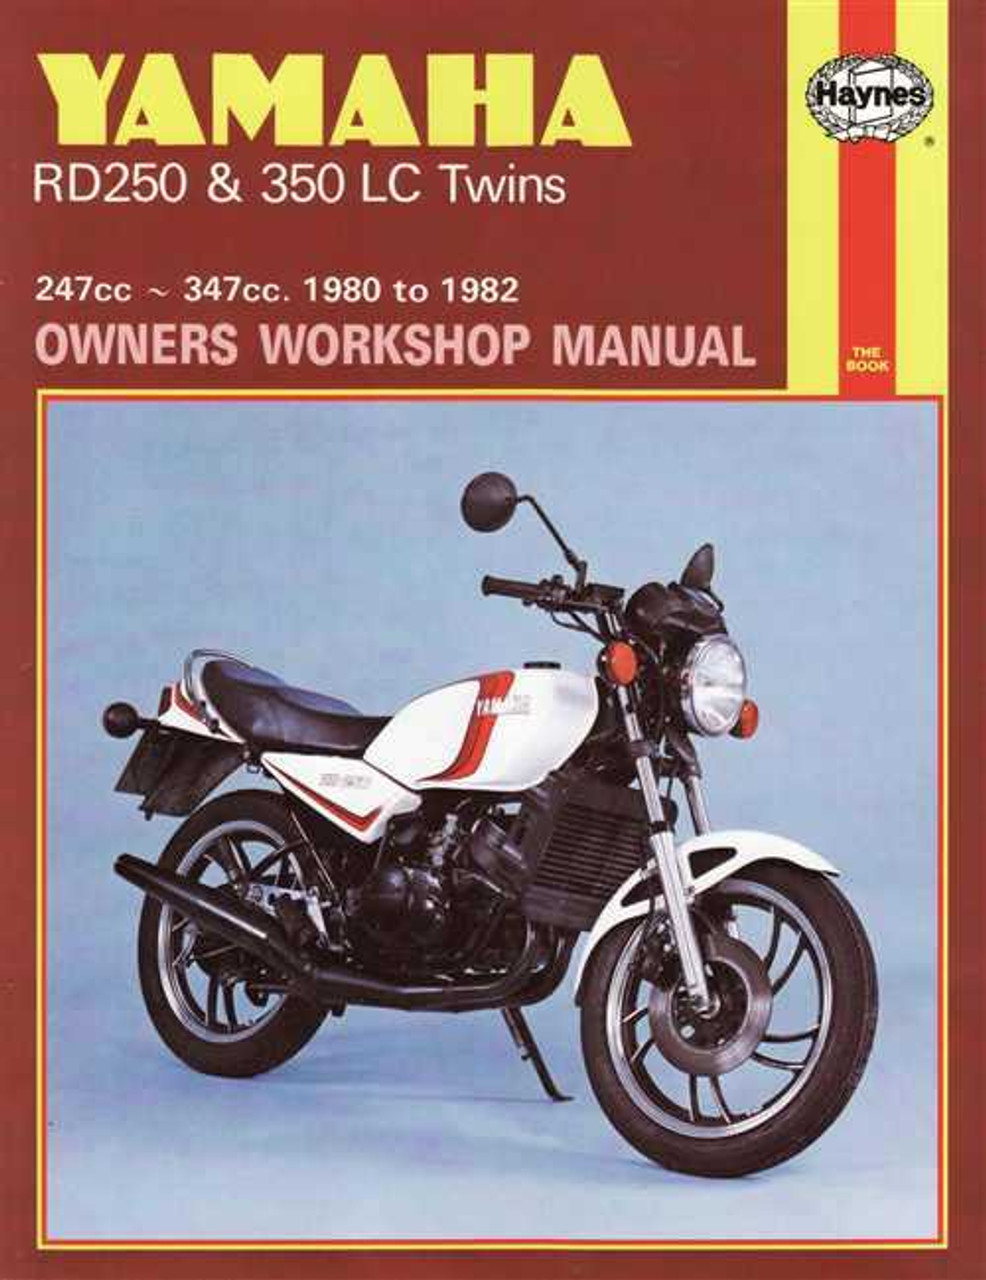 Yamaha RD250 and RD350 LC Twins 247cc, 347cc 1980 - 1982 Workshop Manual